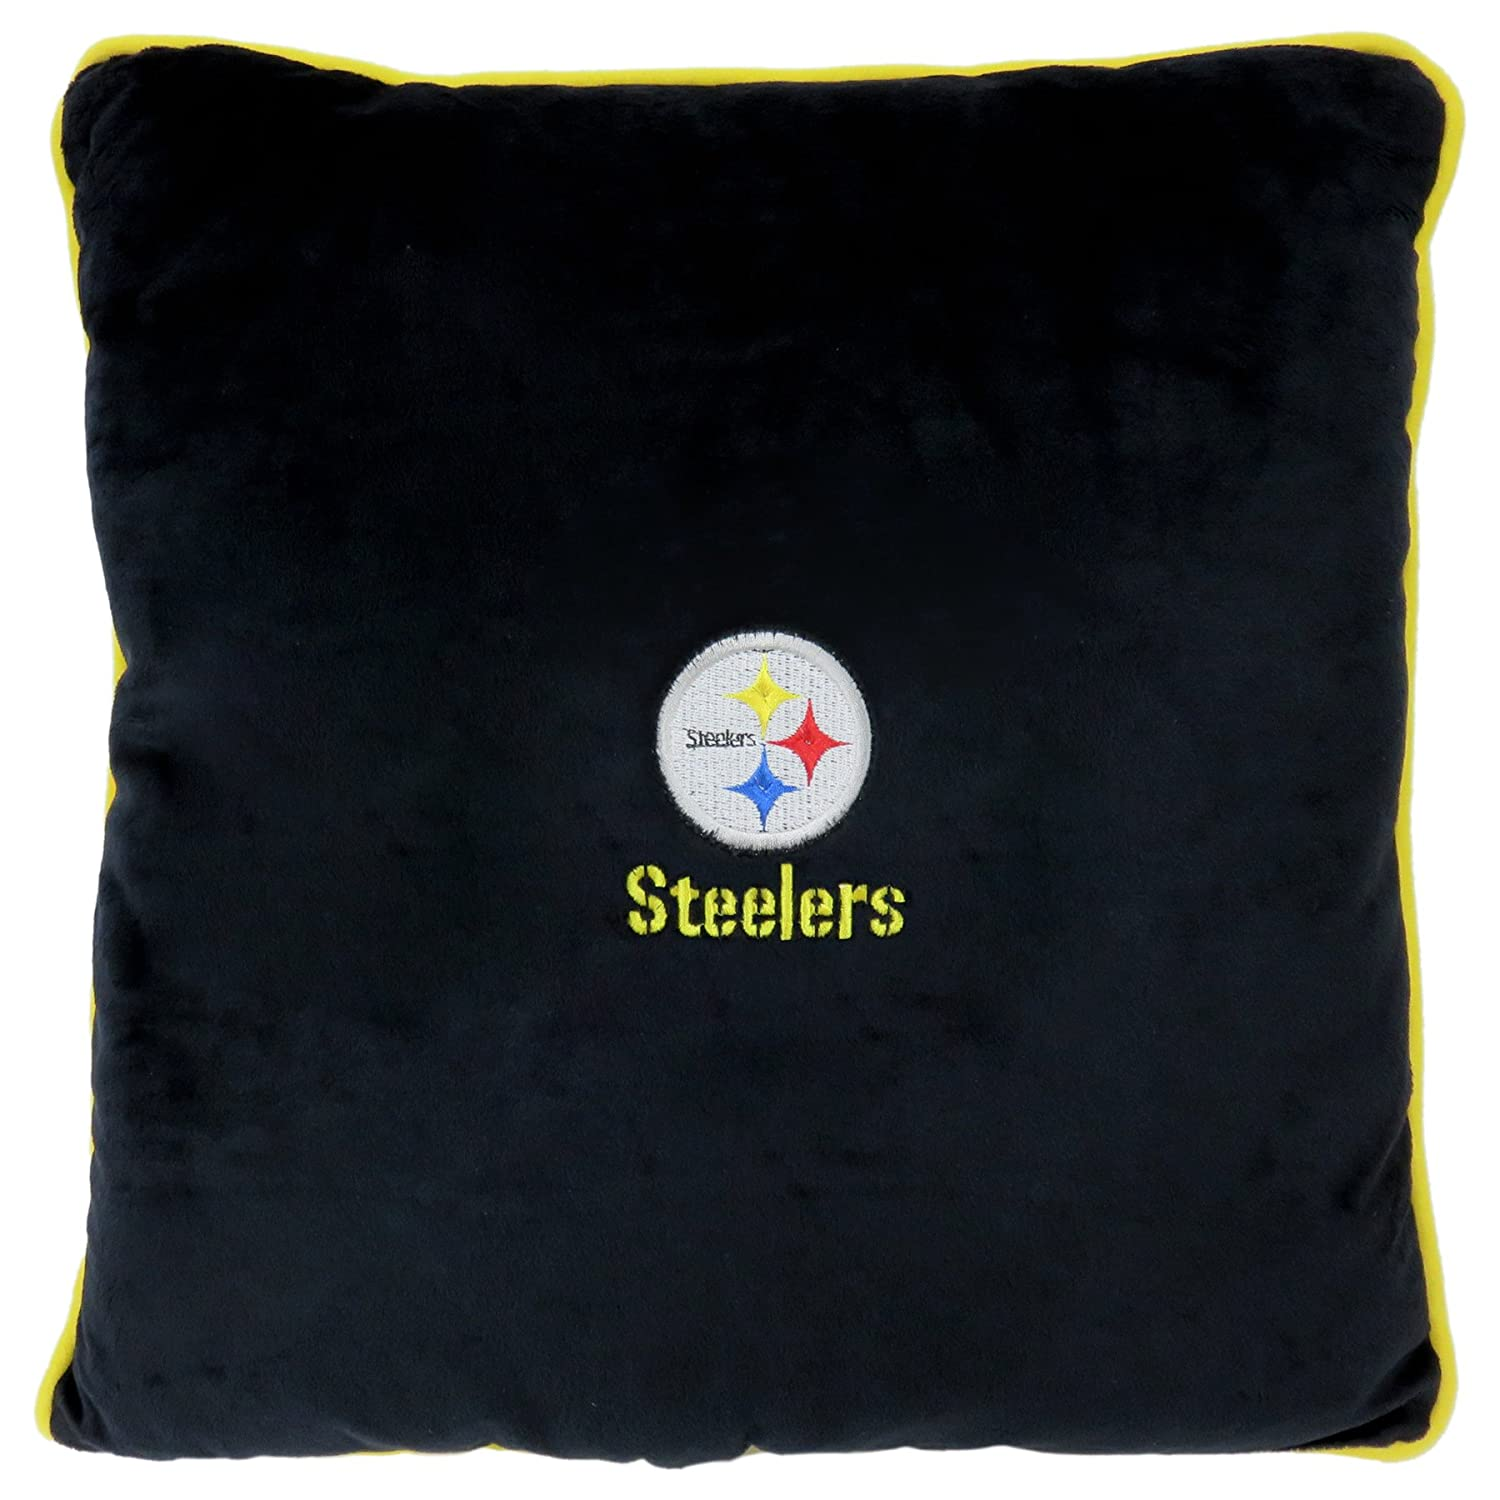 NFL PITTSBURGH STEELERS  Soft & Cozy  Dog Pillow. Plush & Comfortable Pet Pillow